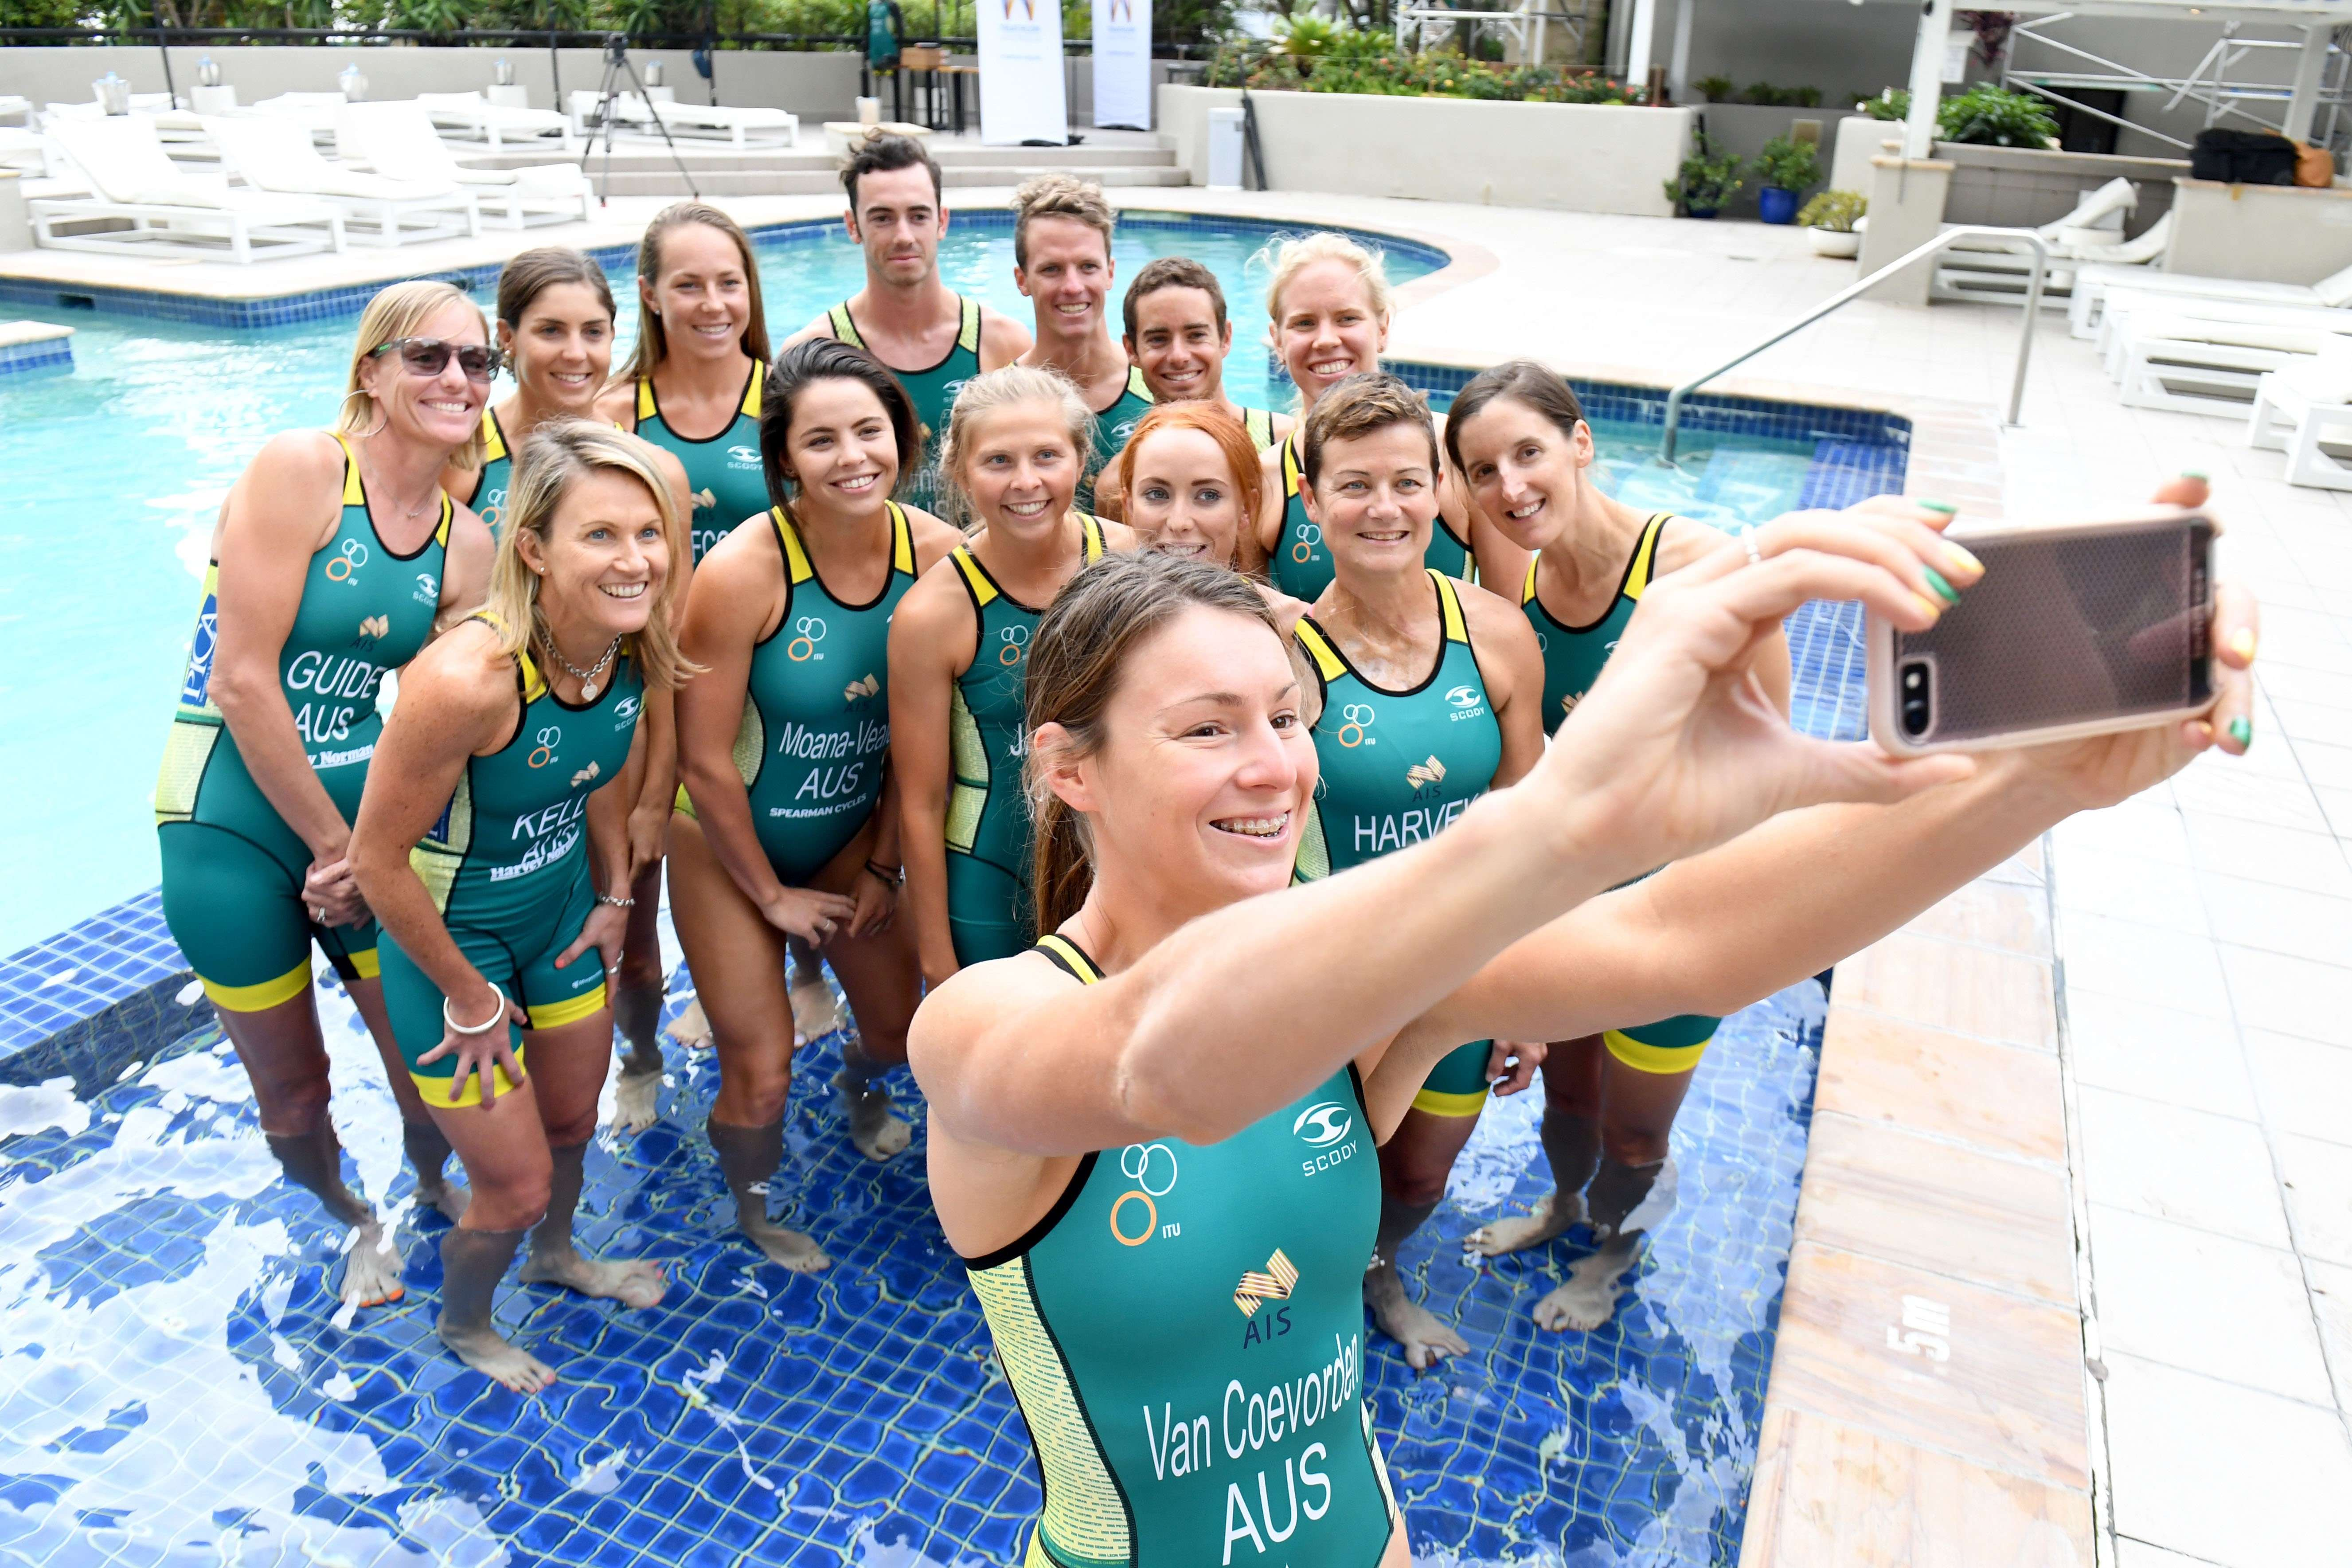 Triathlon Australia Fitting Suits 2017 - team